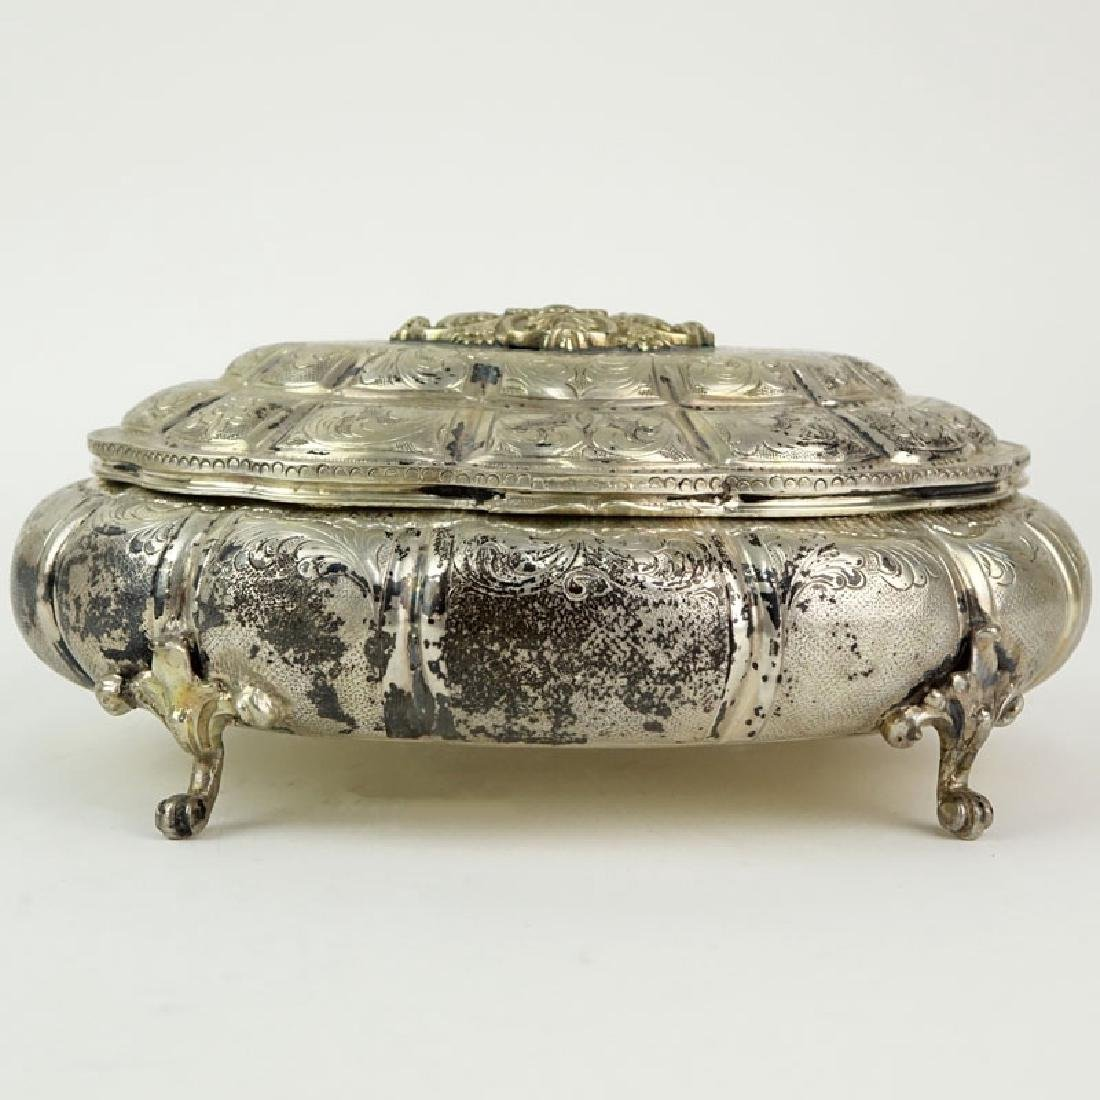 Antique 800 Silver Scrolled and Repousse Footed Dresser - 2